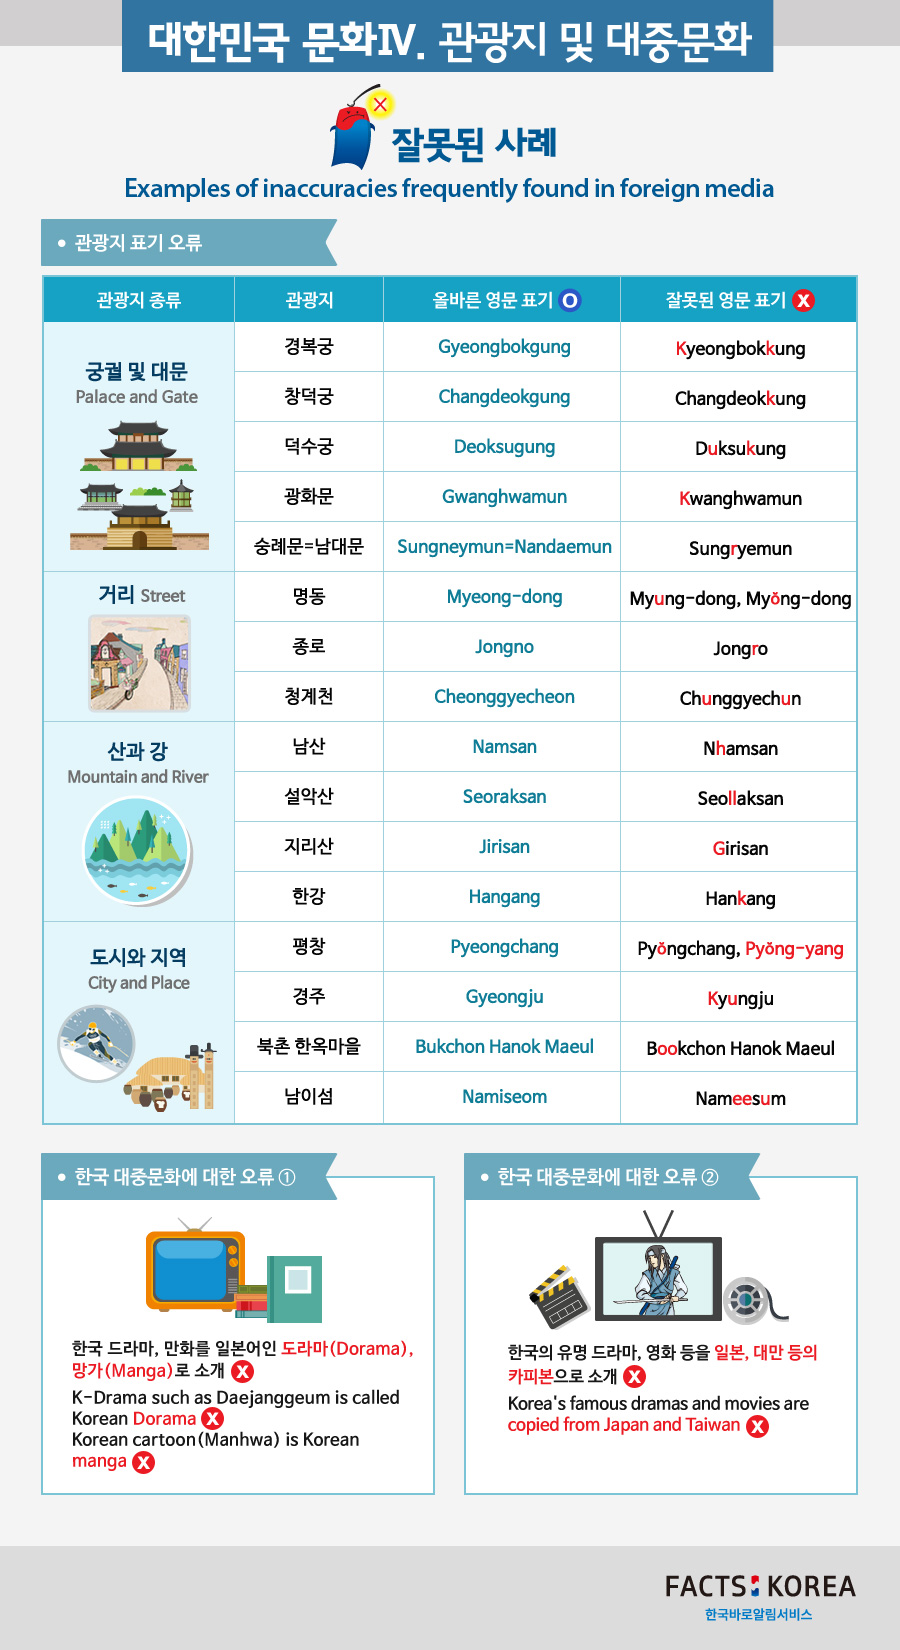 Tourist attractions and popular culture of the Republic of Korea